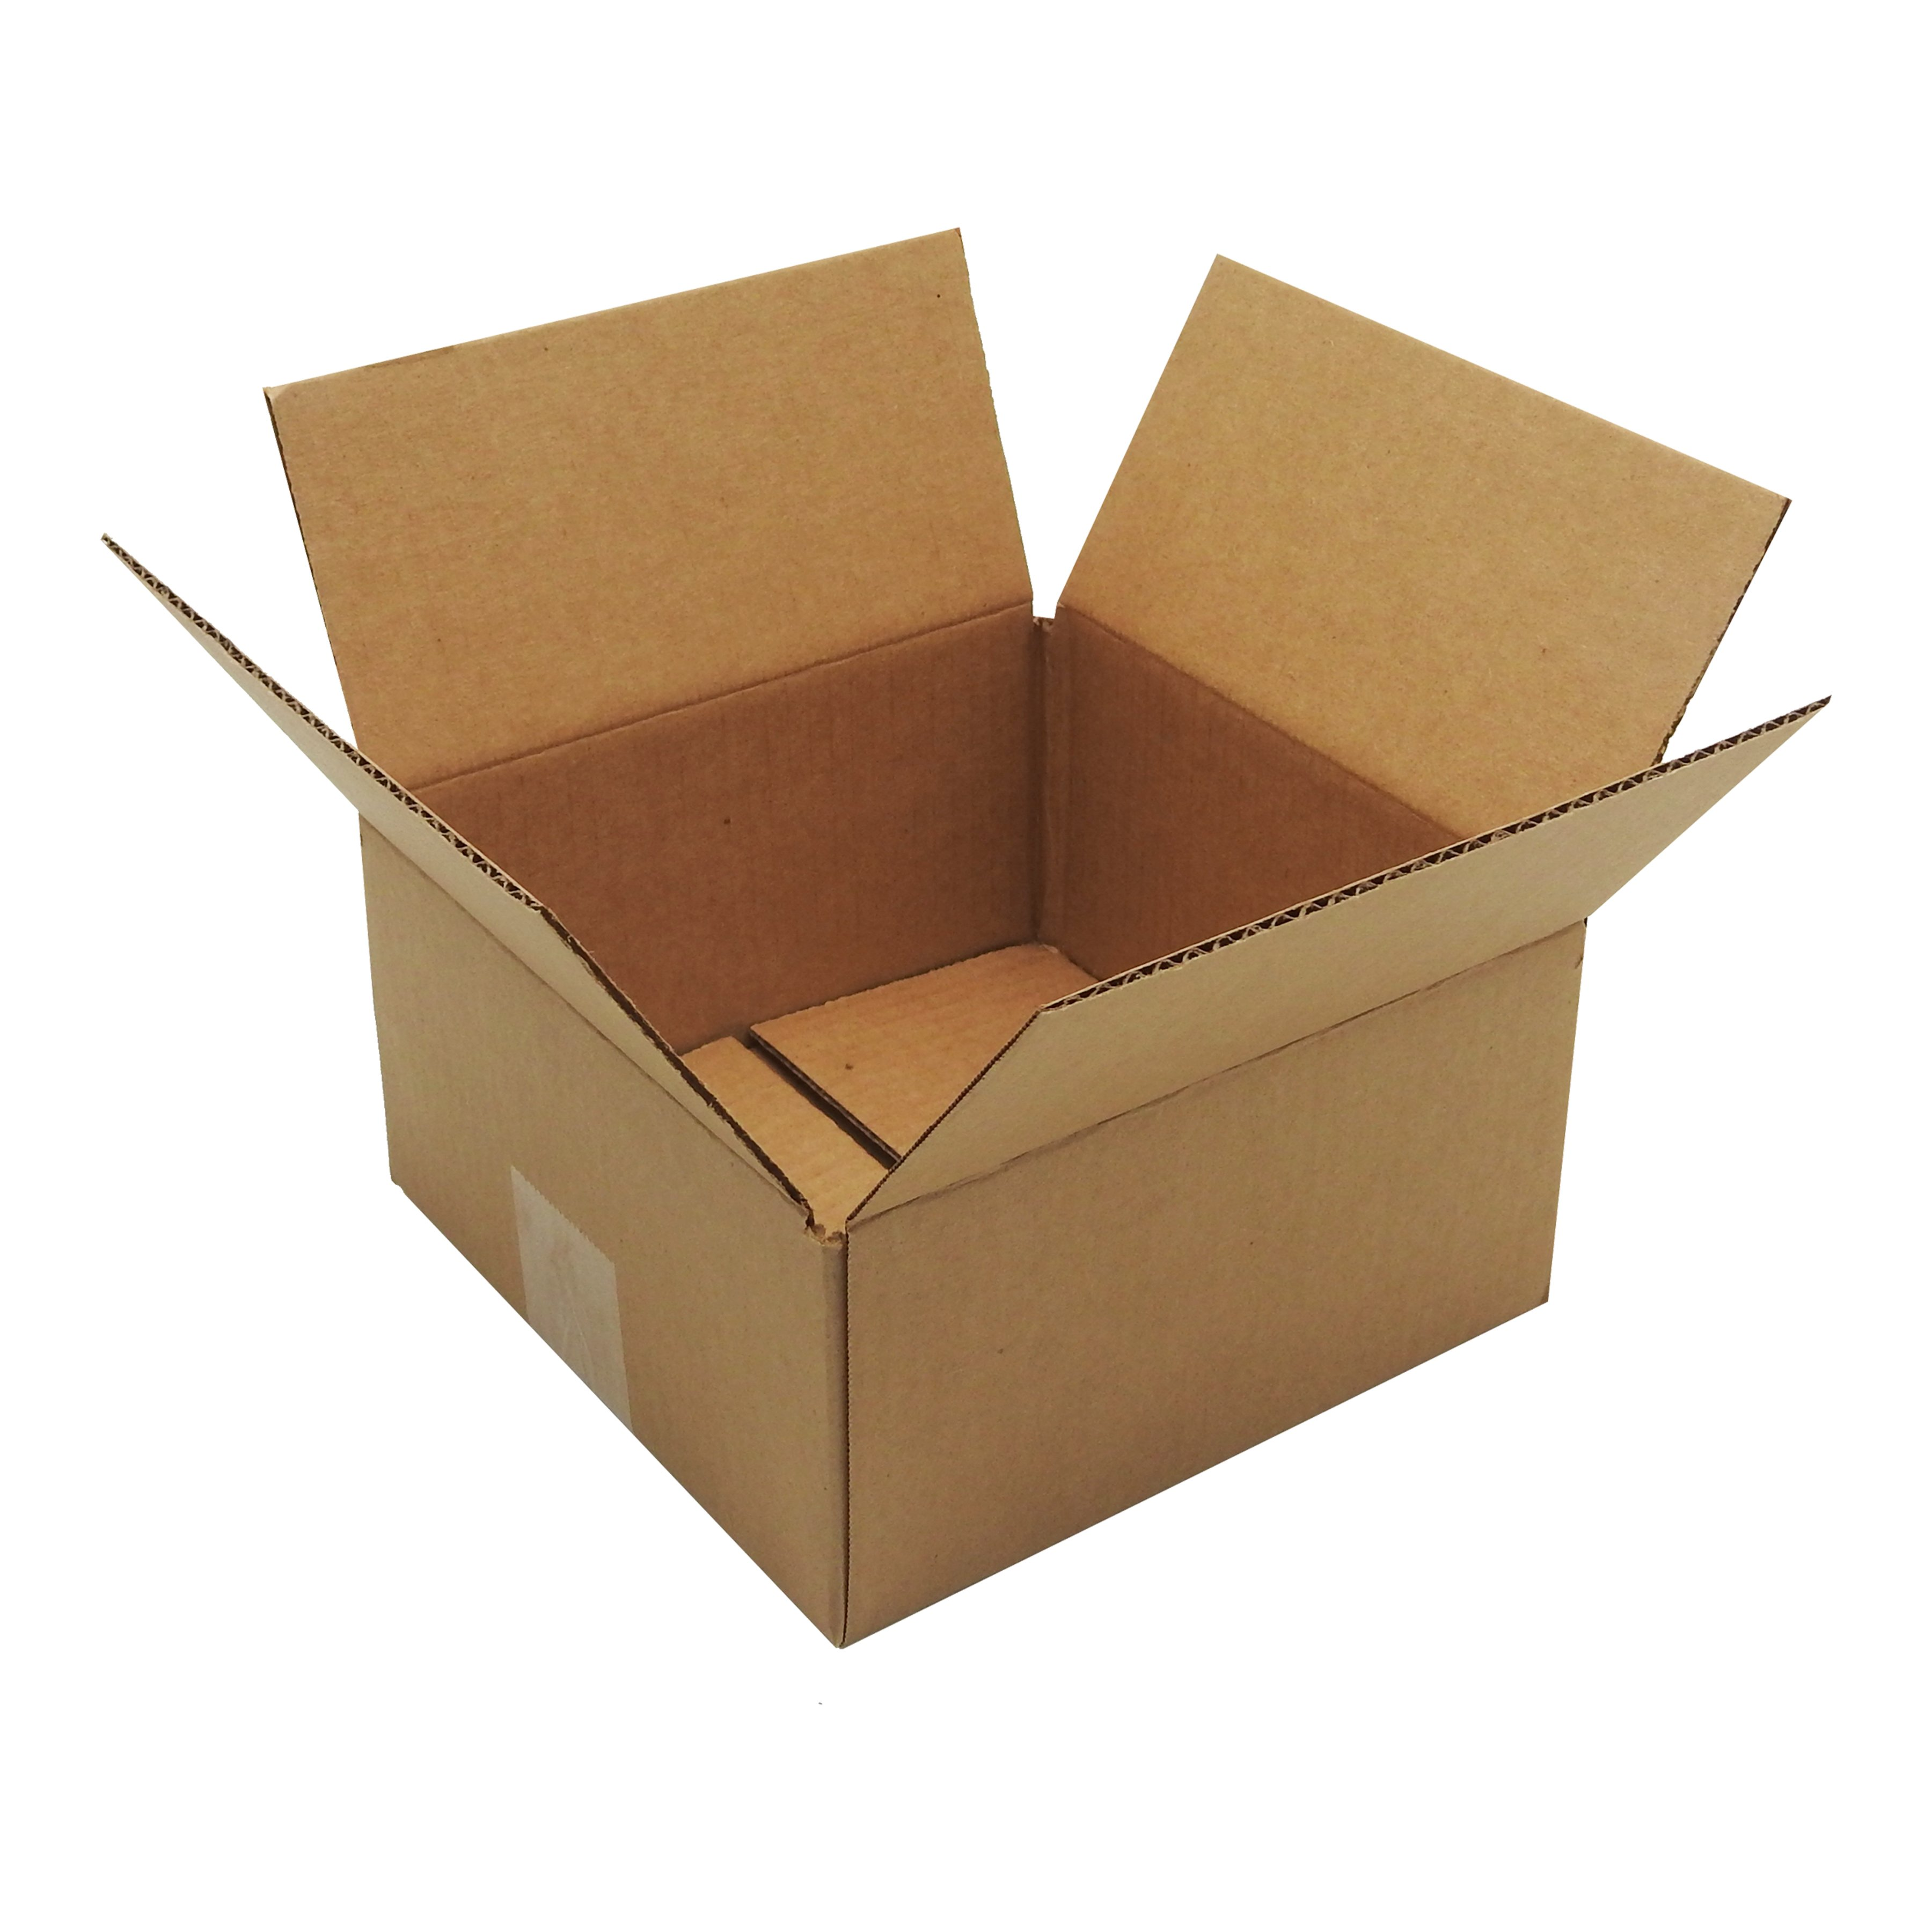 100 8x8x4 Corrugated Cardboard Shipping Mailing Packing Moving Boxes Box Carton